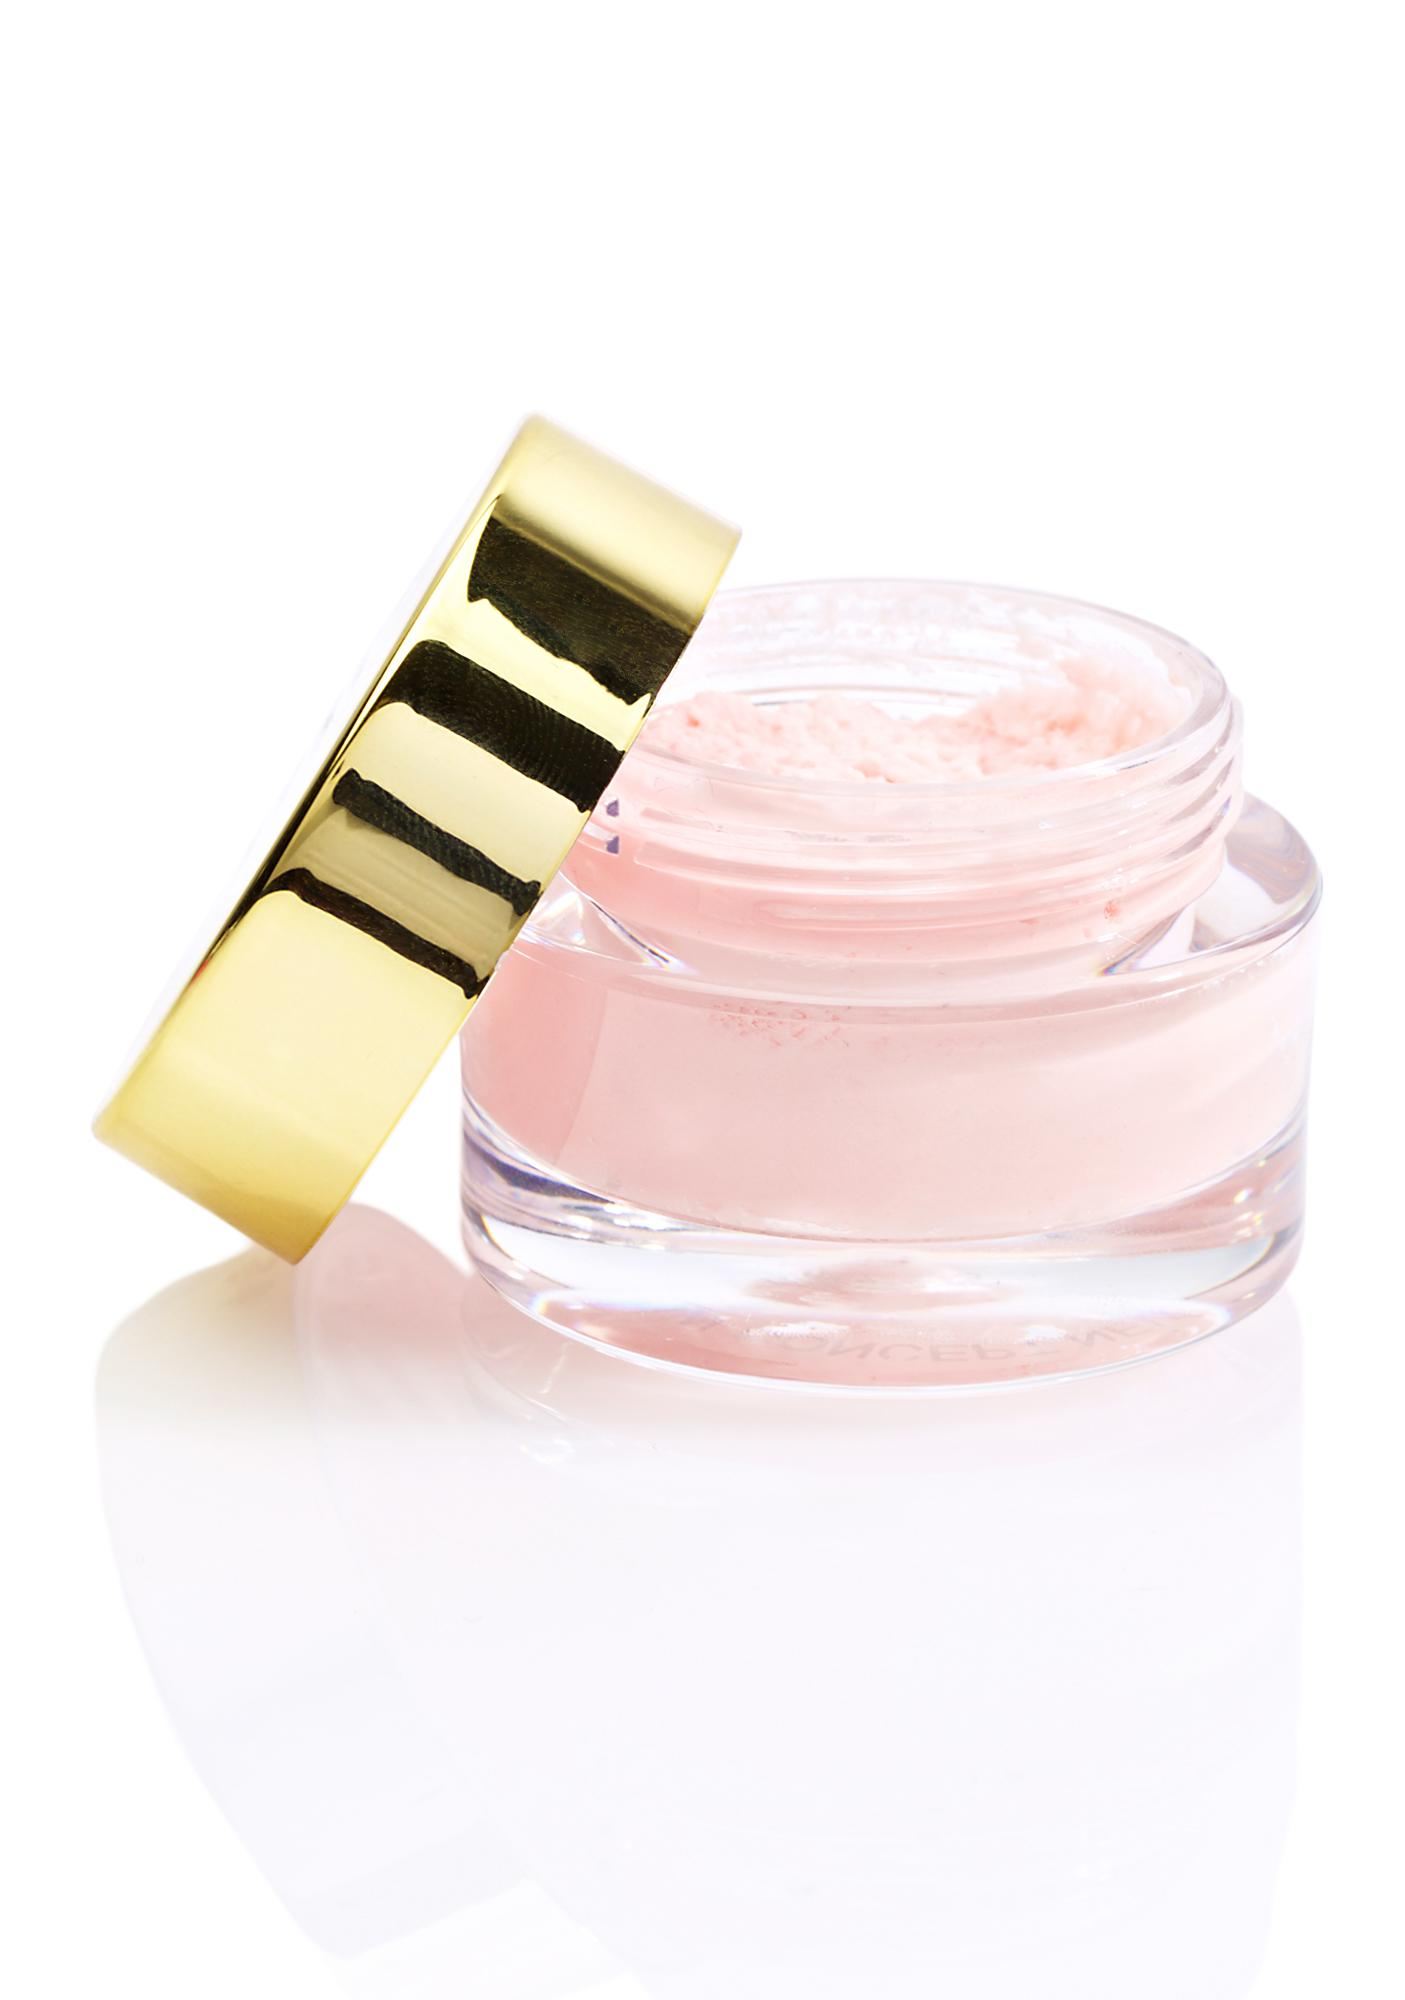 Winky Lux Whipped Cream Primer